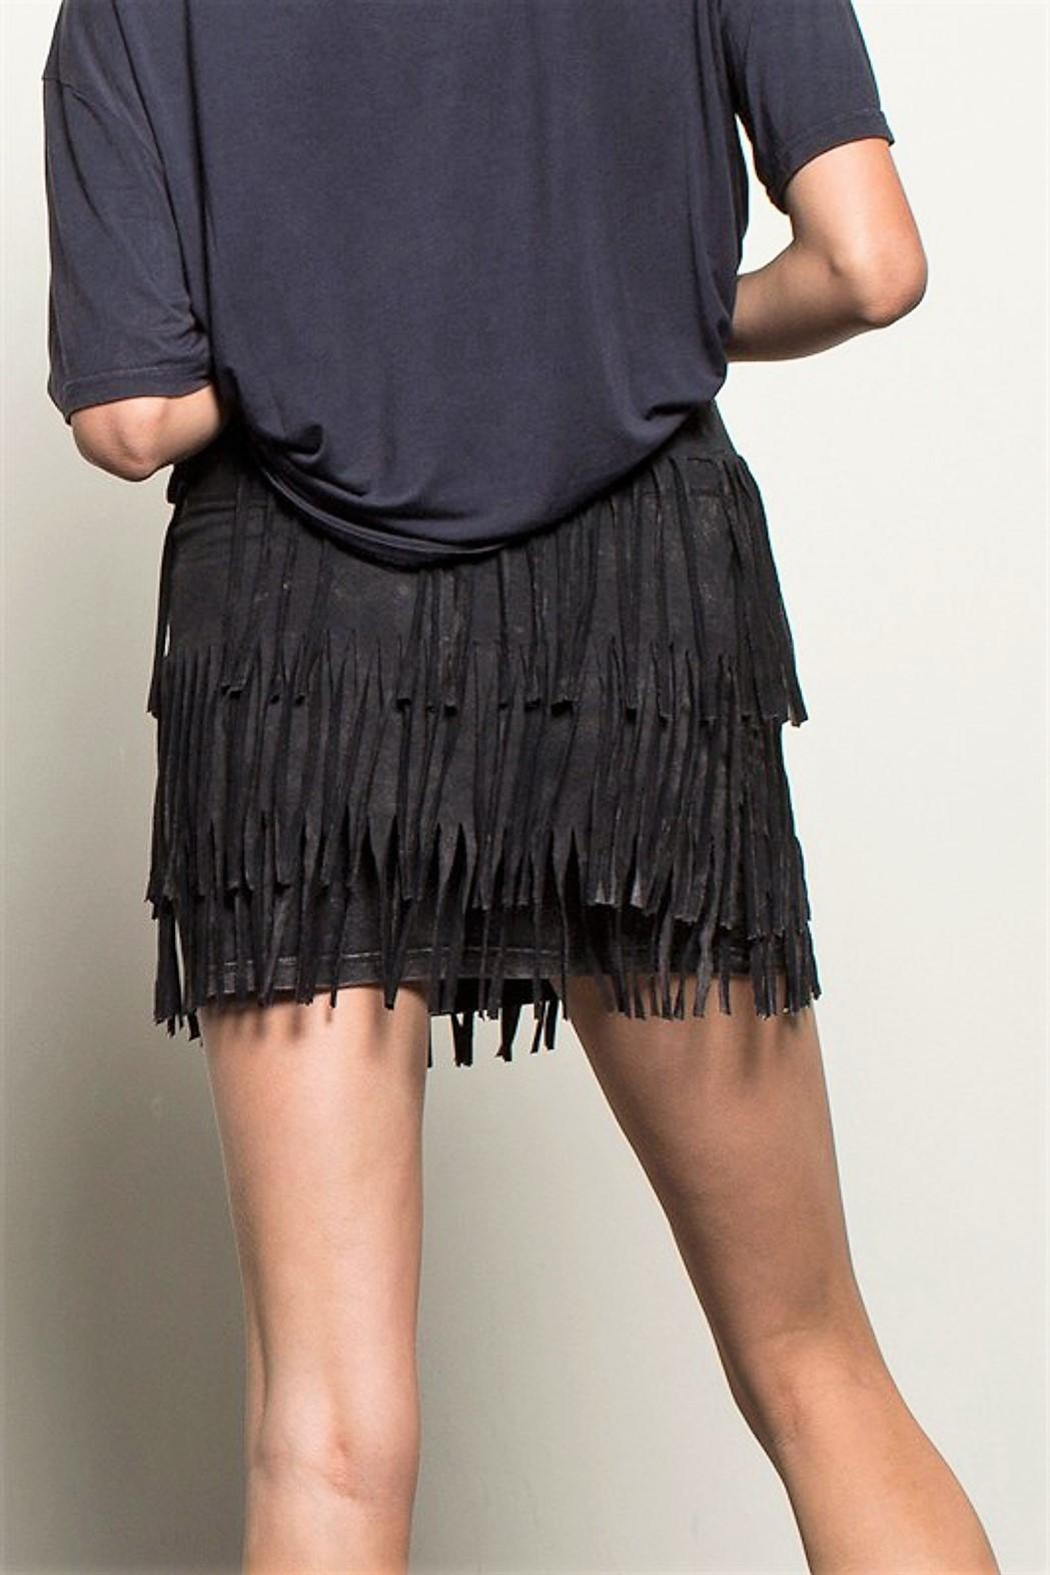 People Outfitter Fringe Stone Wash Skirt - Front Full Image